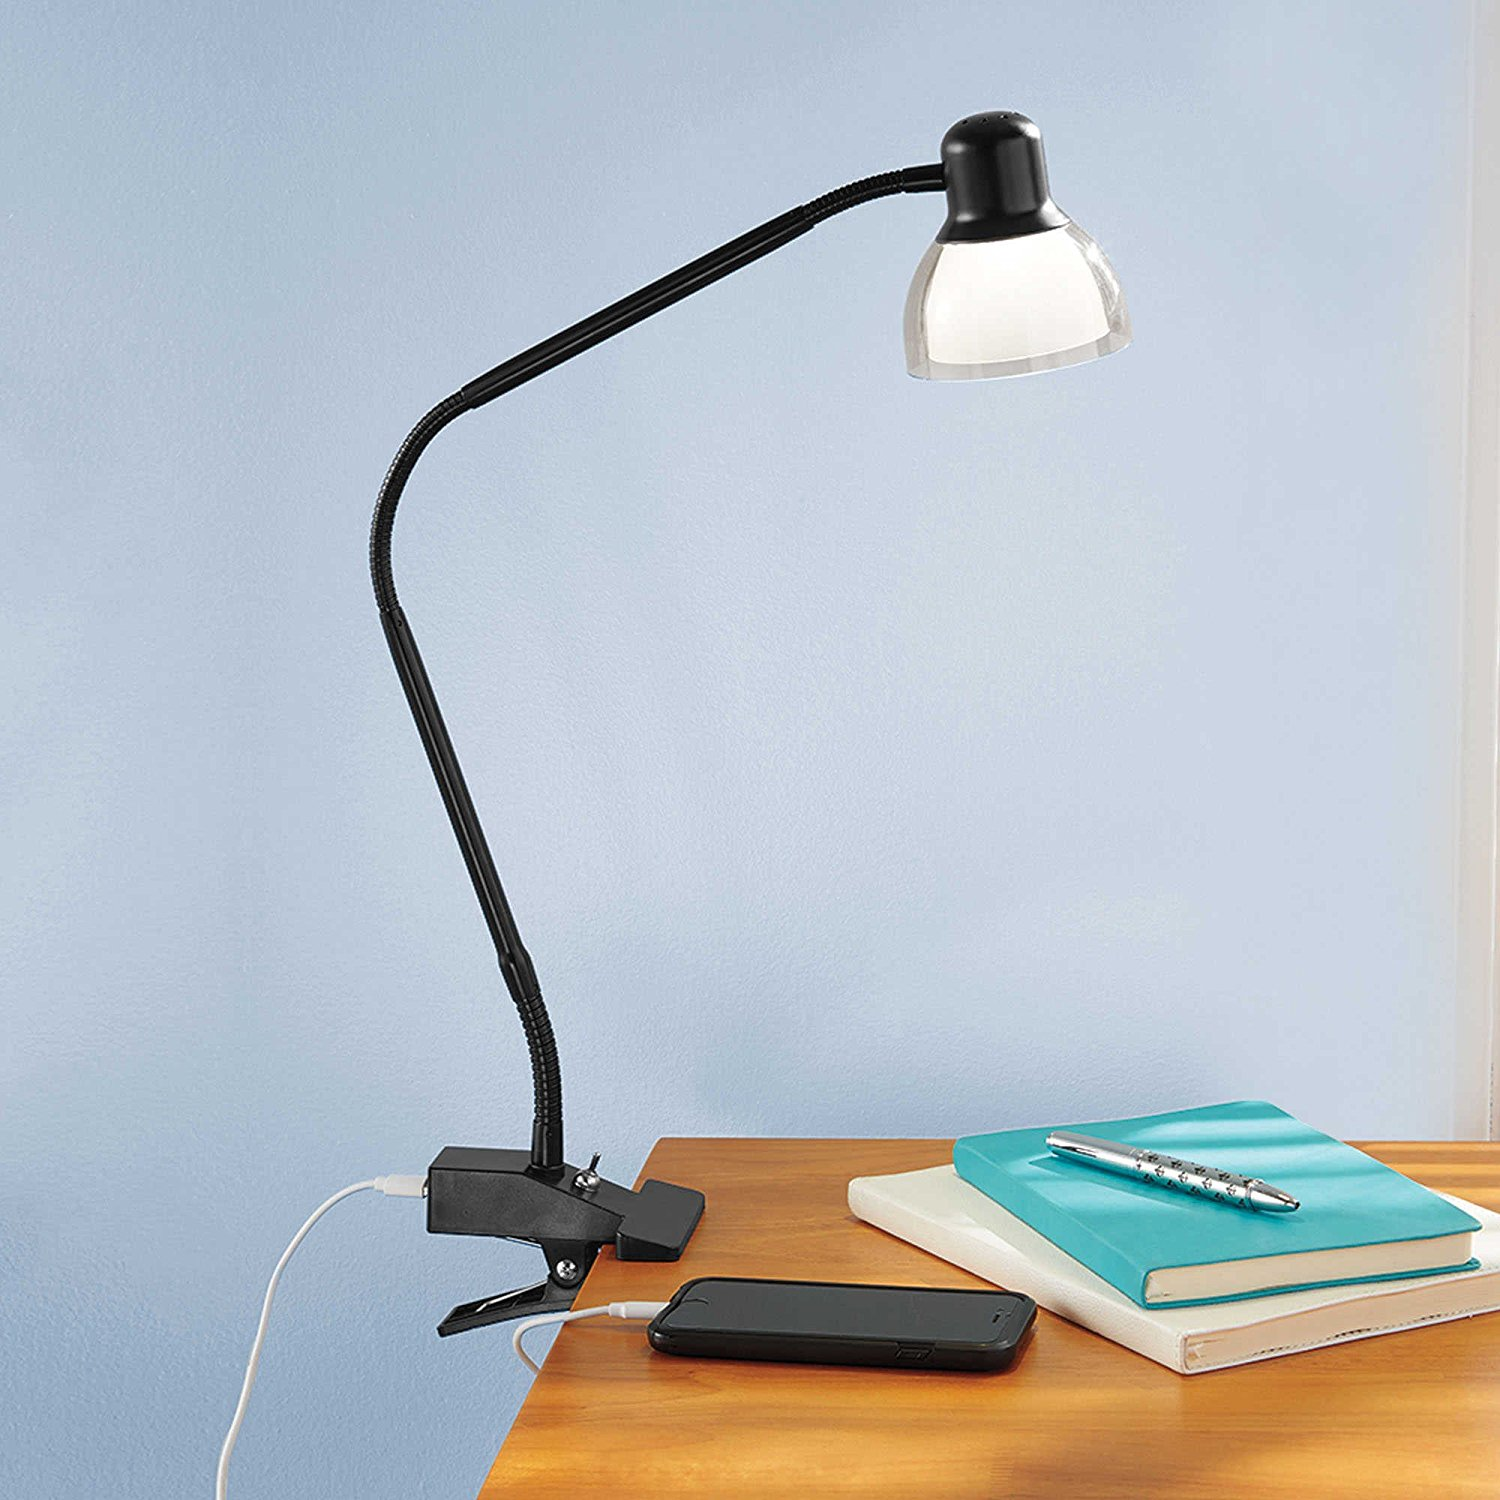 Functional LED Clip Lamp in Matte Black Featuring a Flexible Gooseneck Design Ideal for Lighting a Workspace or Desk... by